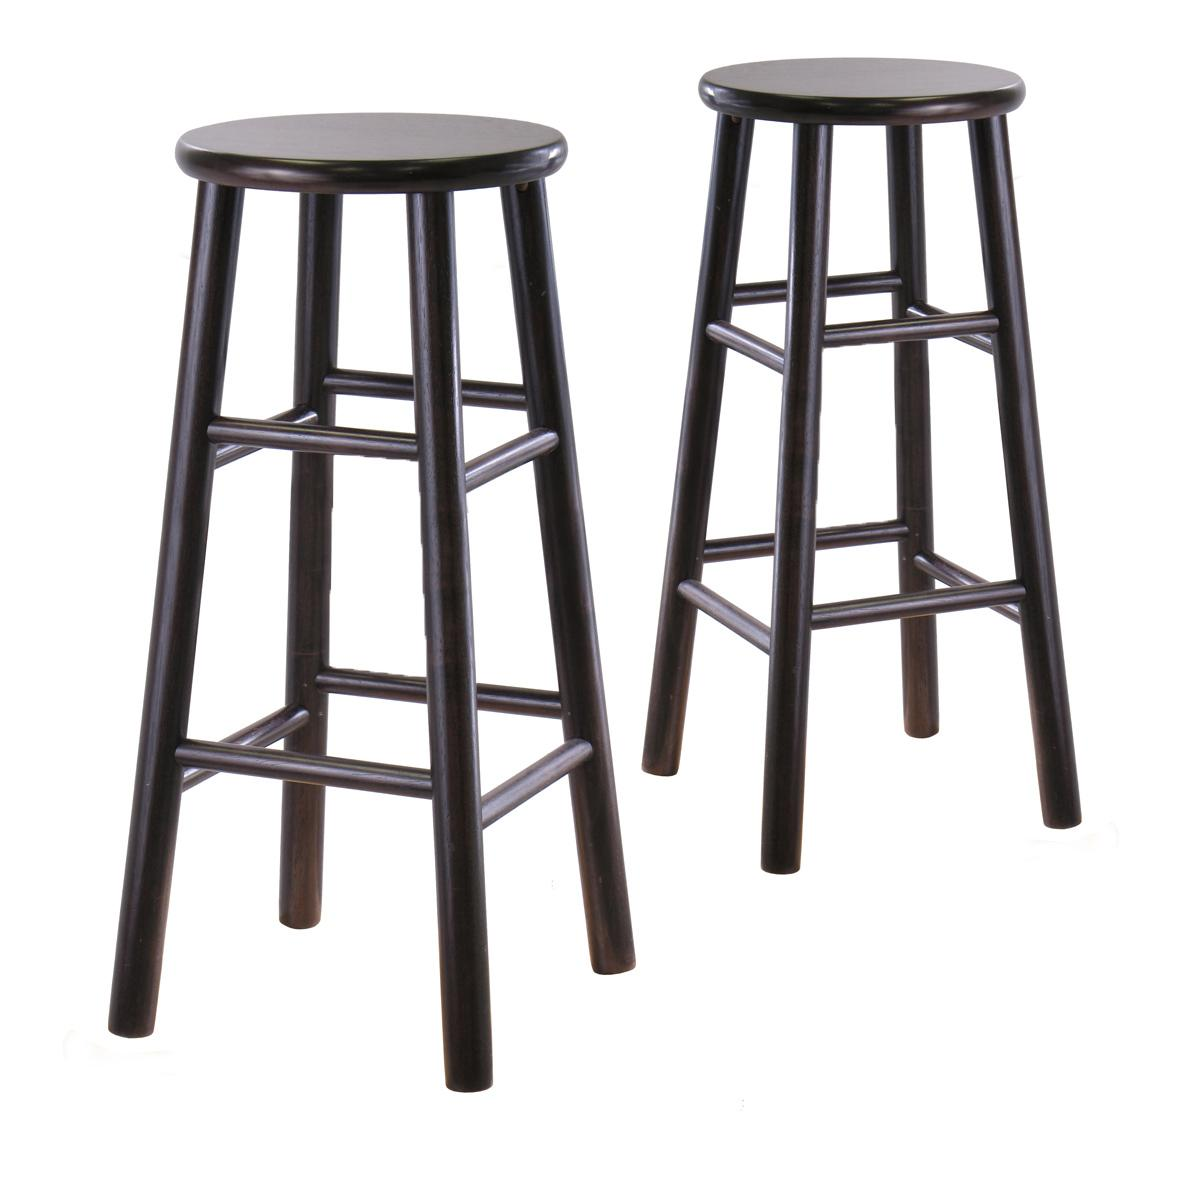 Amazon.com: Winsome Wood S/2 Wood 30-Inch Bar Stools, Espresso ...